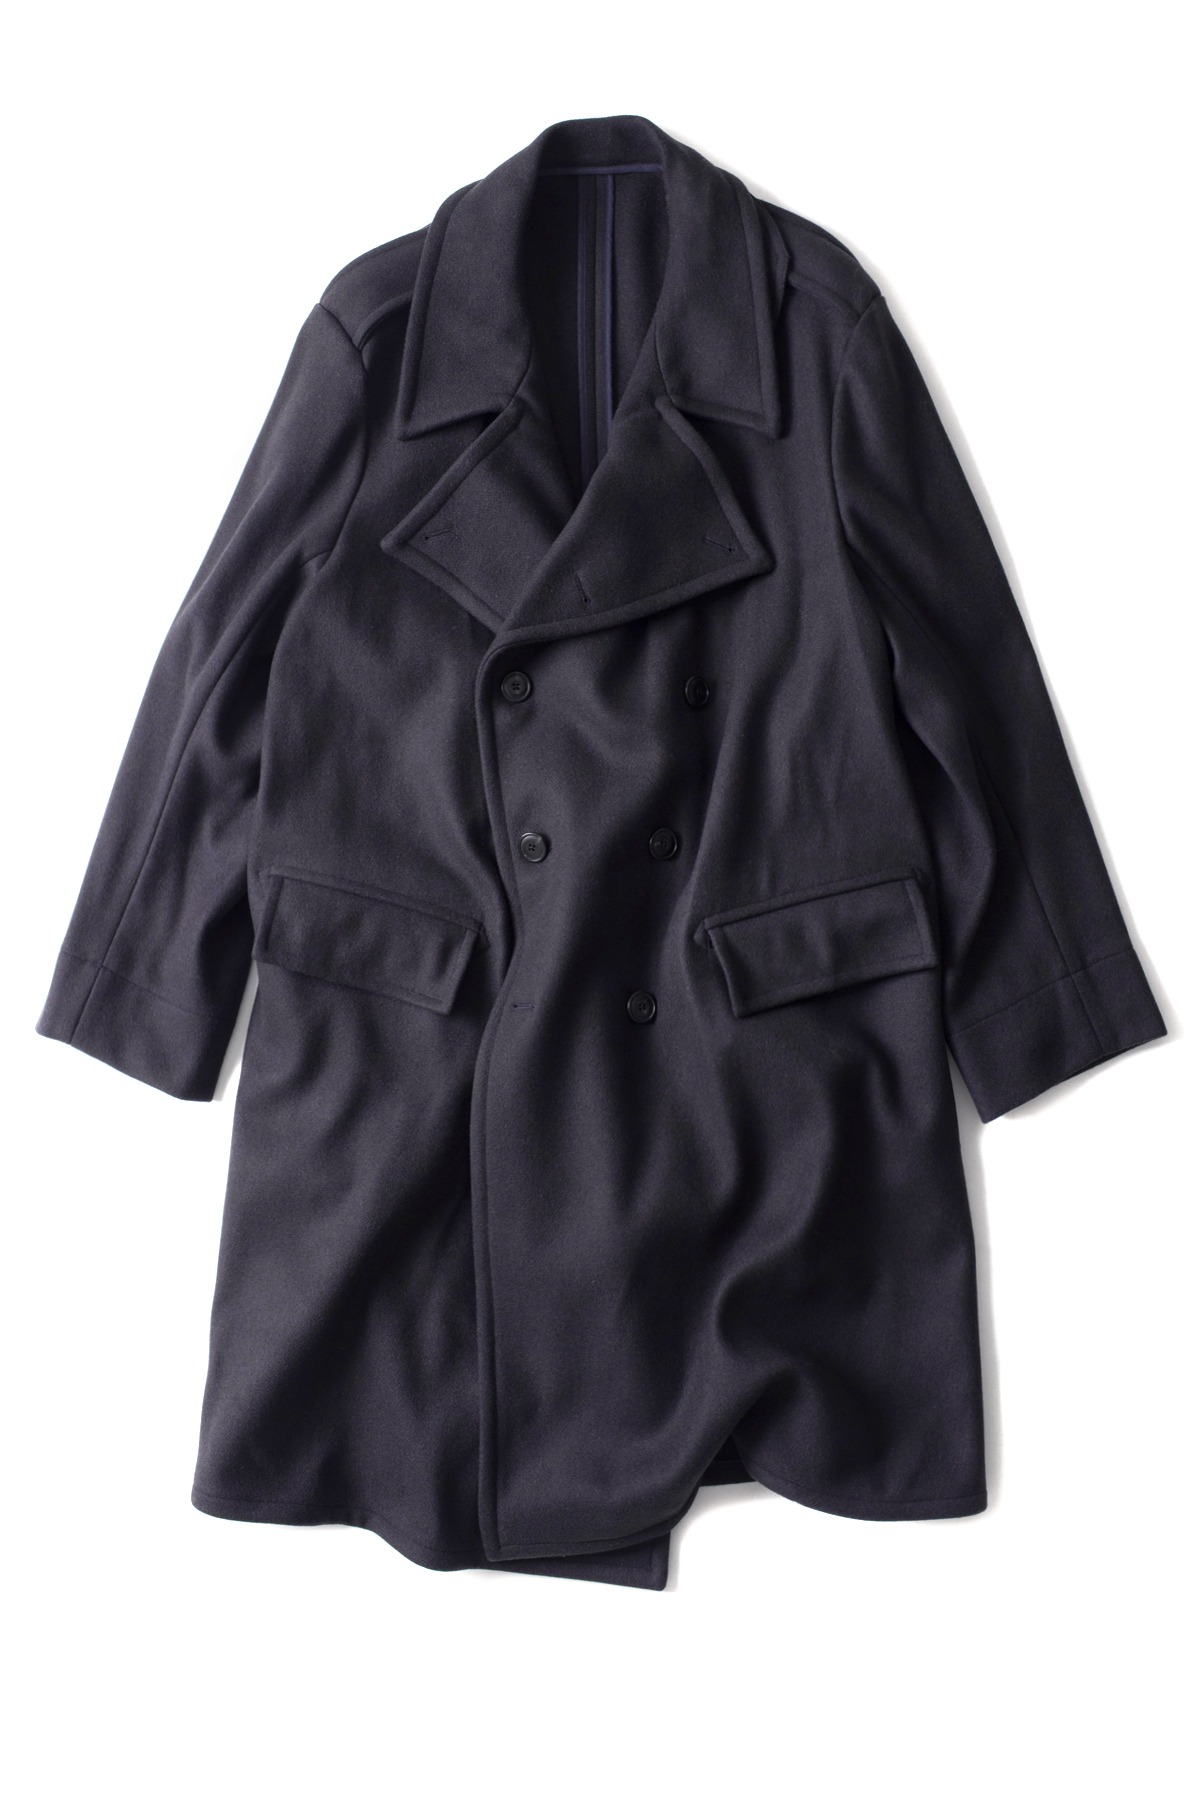 East Harbour Surplus : Pierre Coat (Dark Navy)